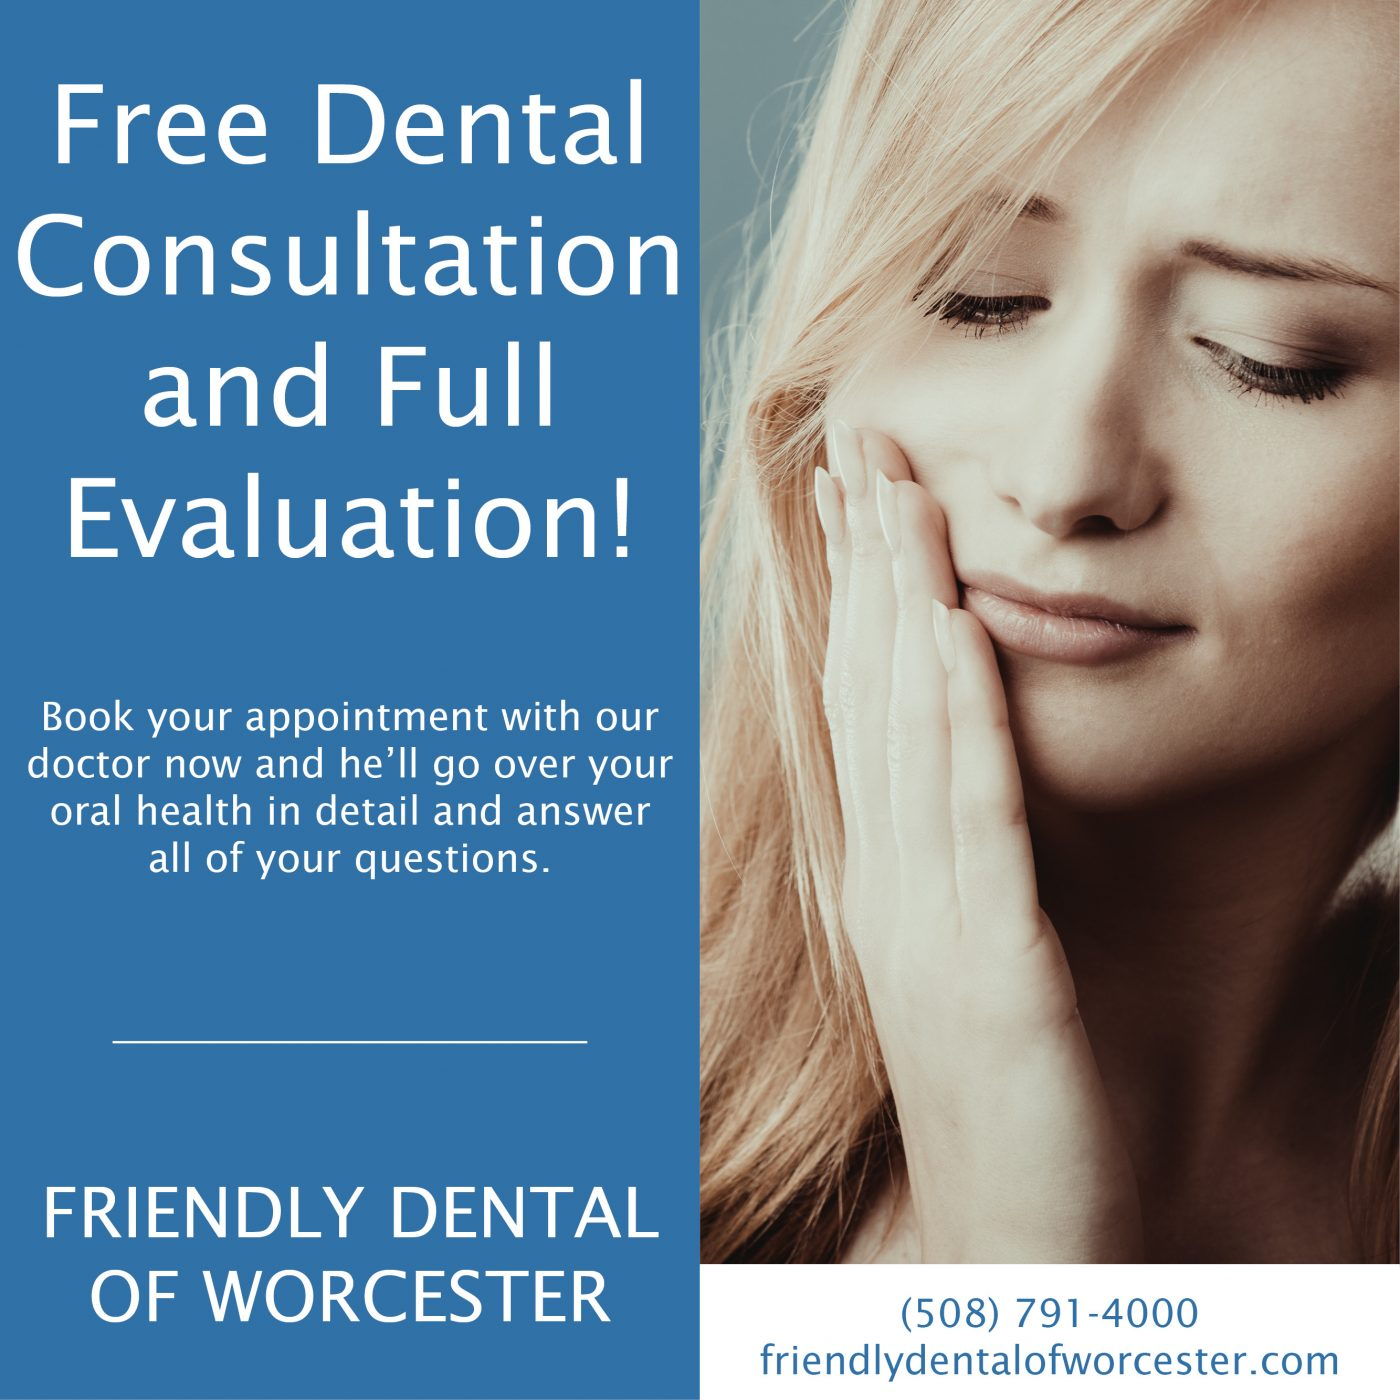 Worcester Dentistry Practice - Free Consultation and Evaluation at Friendly Dental of Worcester